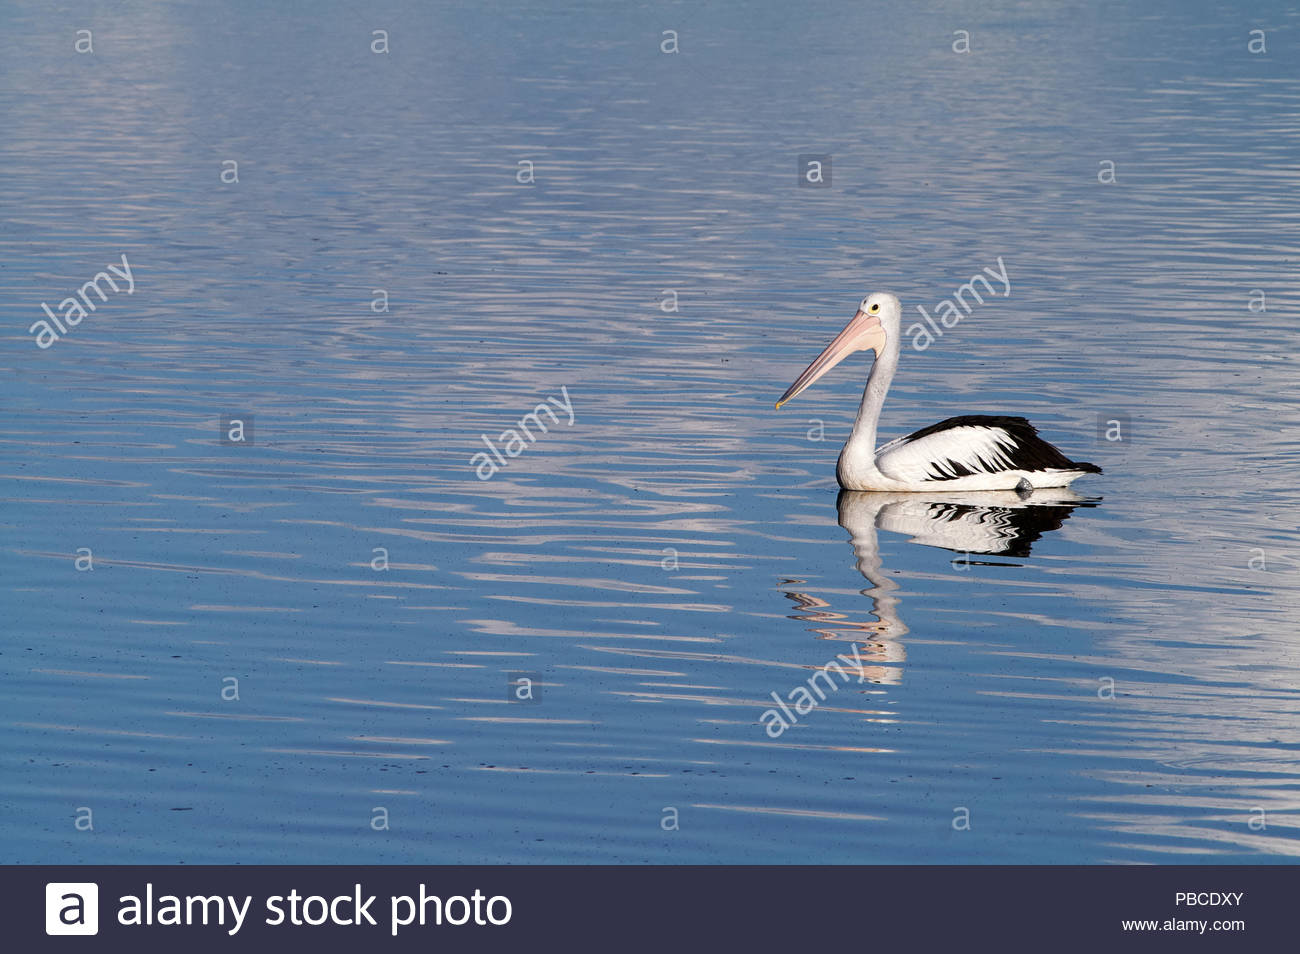 An Australian pelican(Pelecanus conspicillatus), paddling on the lovely purple/blue surface of the Clarence River; at Goodwood Island, NSW, Australia. - Stock Image